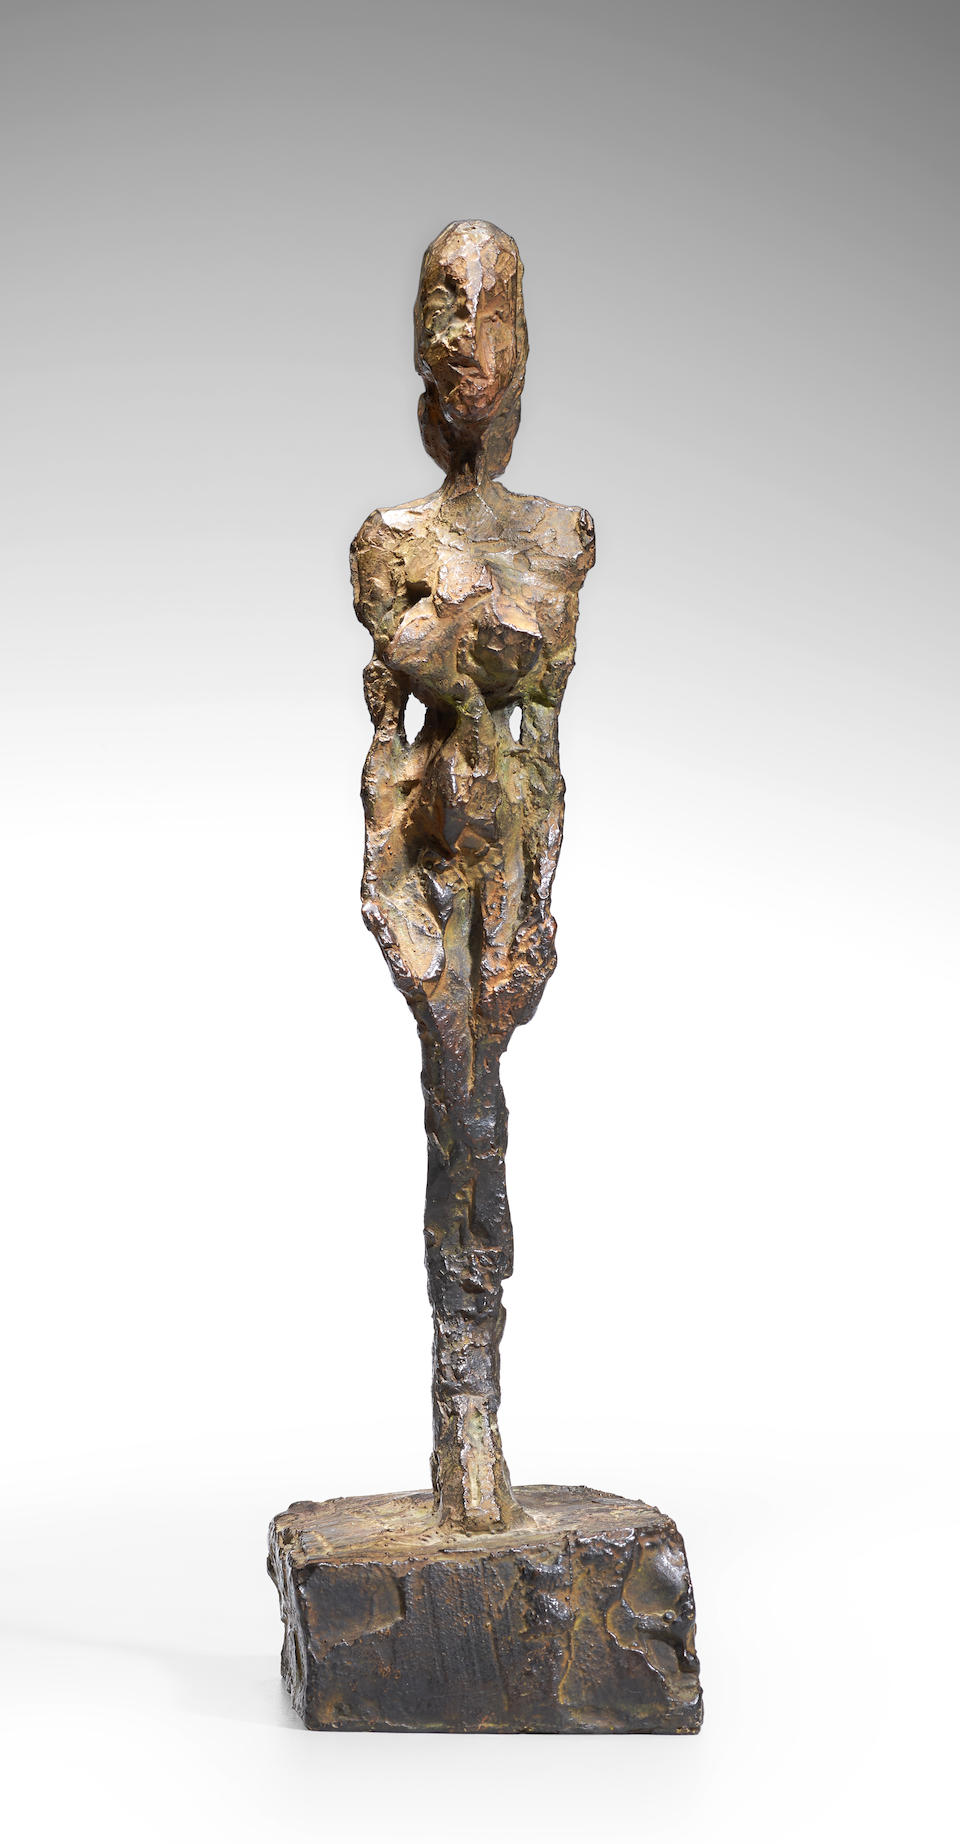 Alberto Giacometti (1901-1966) Figurine [Femme debout au chignon] 8 7/8 in (22.3 cm) (height) (Conceived circa 1953-1954 and cast in 1980 in an edition of eight plus one artist's proof)